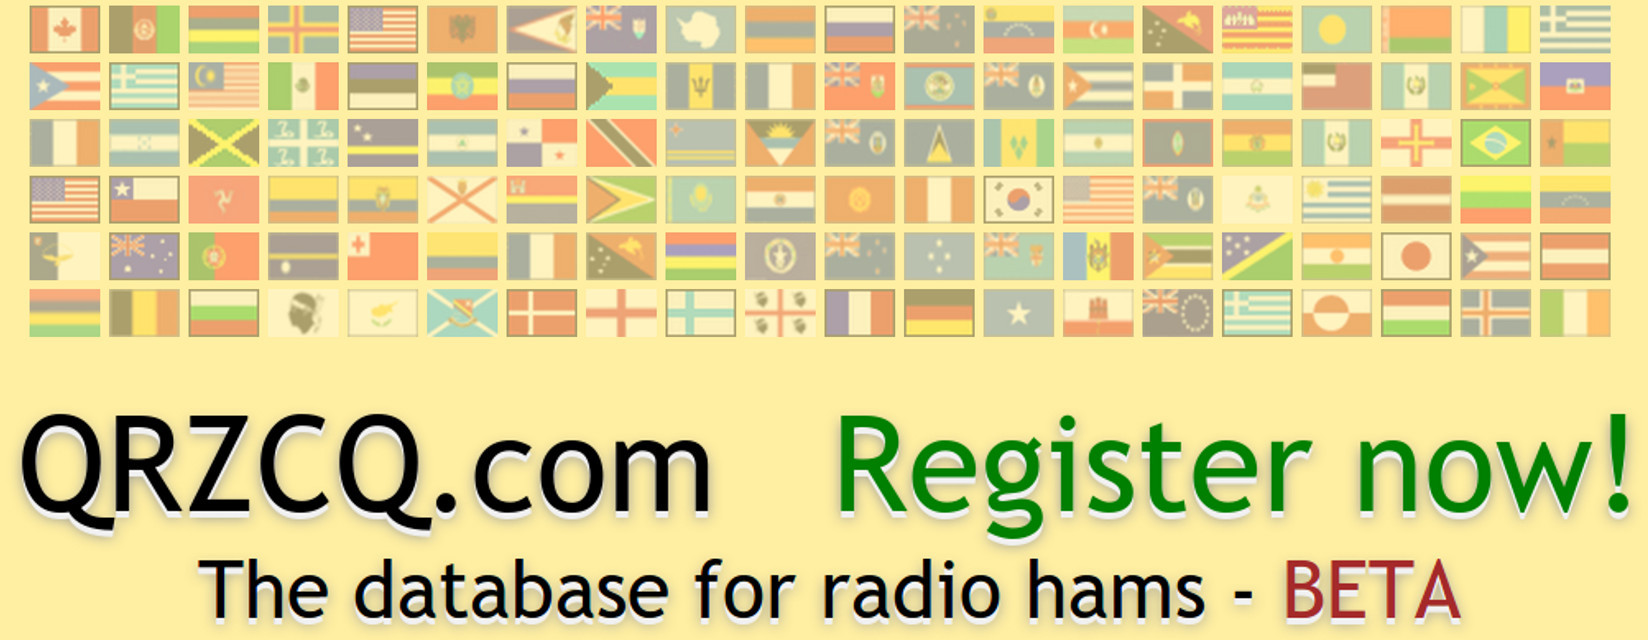 QRZCQ - The database for radio hams - BETA